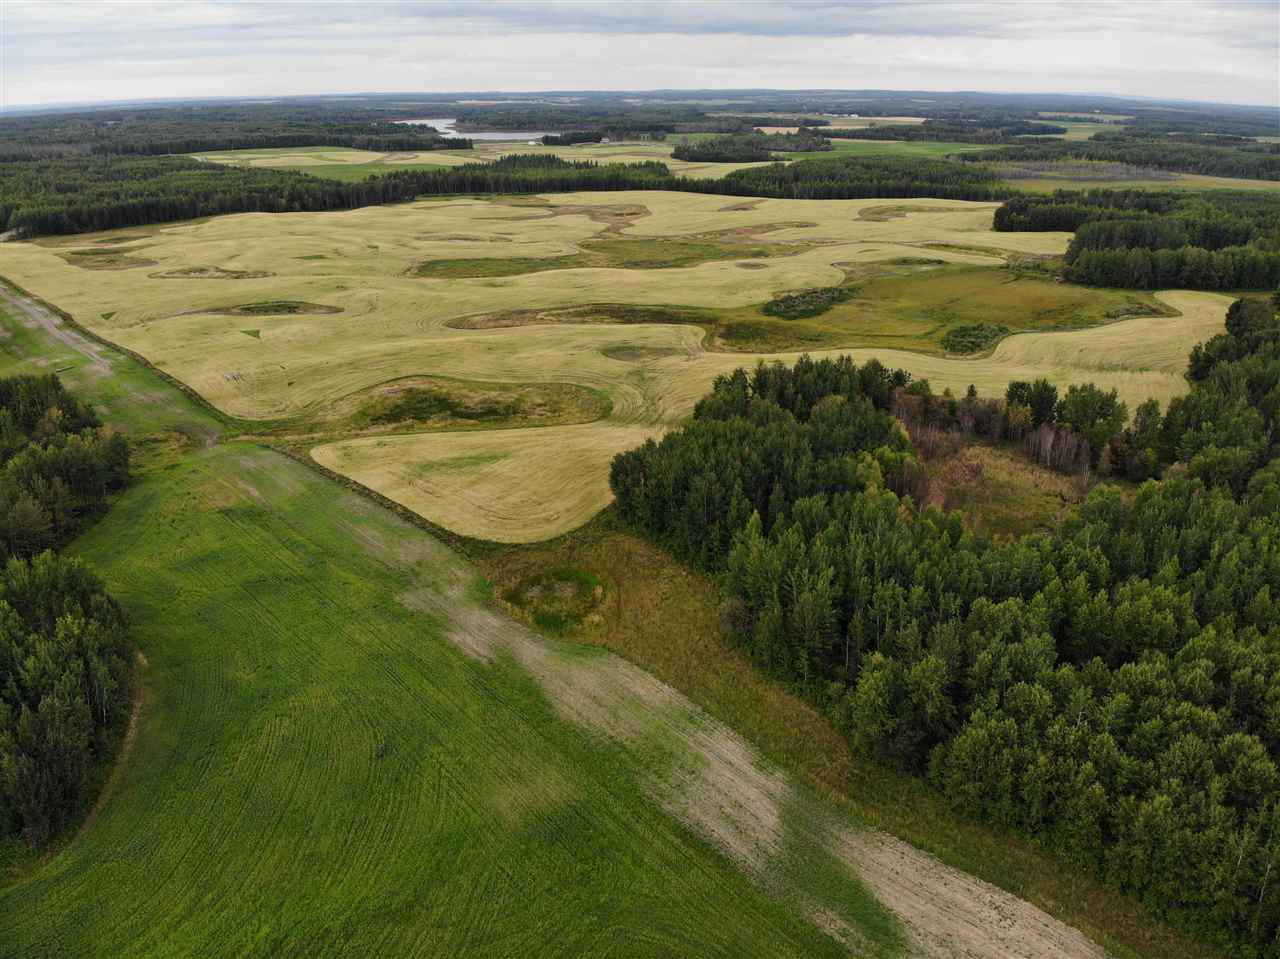 "1243 Acres of Deeded Crop, Hay and Pasture Government Lease Land West and North of Barrhead situated in one connected block and backing onto well over 100 quarters of Undisturbed Crown Land. 605 Acres deeded & 640 Lease. (SE of 5: 160 acres total, 100 acres open, Canola, Oats & Wheat Rotation) (NE of 32: 160 acres total, 65 Acres, Canola, Oats & Wheat Rotation) (SW of 4: 160 acres total, 75 acres open, Hay & Oats) (SE of 4: 160 acres total Natural Pasture, Surface Lease $1875 per/ year) Property features water sources throughout w/ Lease including Year round natural Lake water source. Good cut Lines and Fence lines conveniently cleared 30'-40' w/ fresh grass seeded. Exterior of entire lease fenced w/ lifetime 3"" solid plastic posts. Outside 5 wire, cross fencing 4 wire. High grass producer through dry times. Bonus Exceptional Wildlife Presence and Activity, Trails, Private singular dead end road access, Water sources, Surface lease Revenue and more."